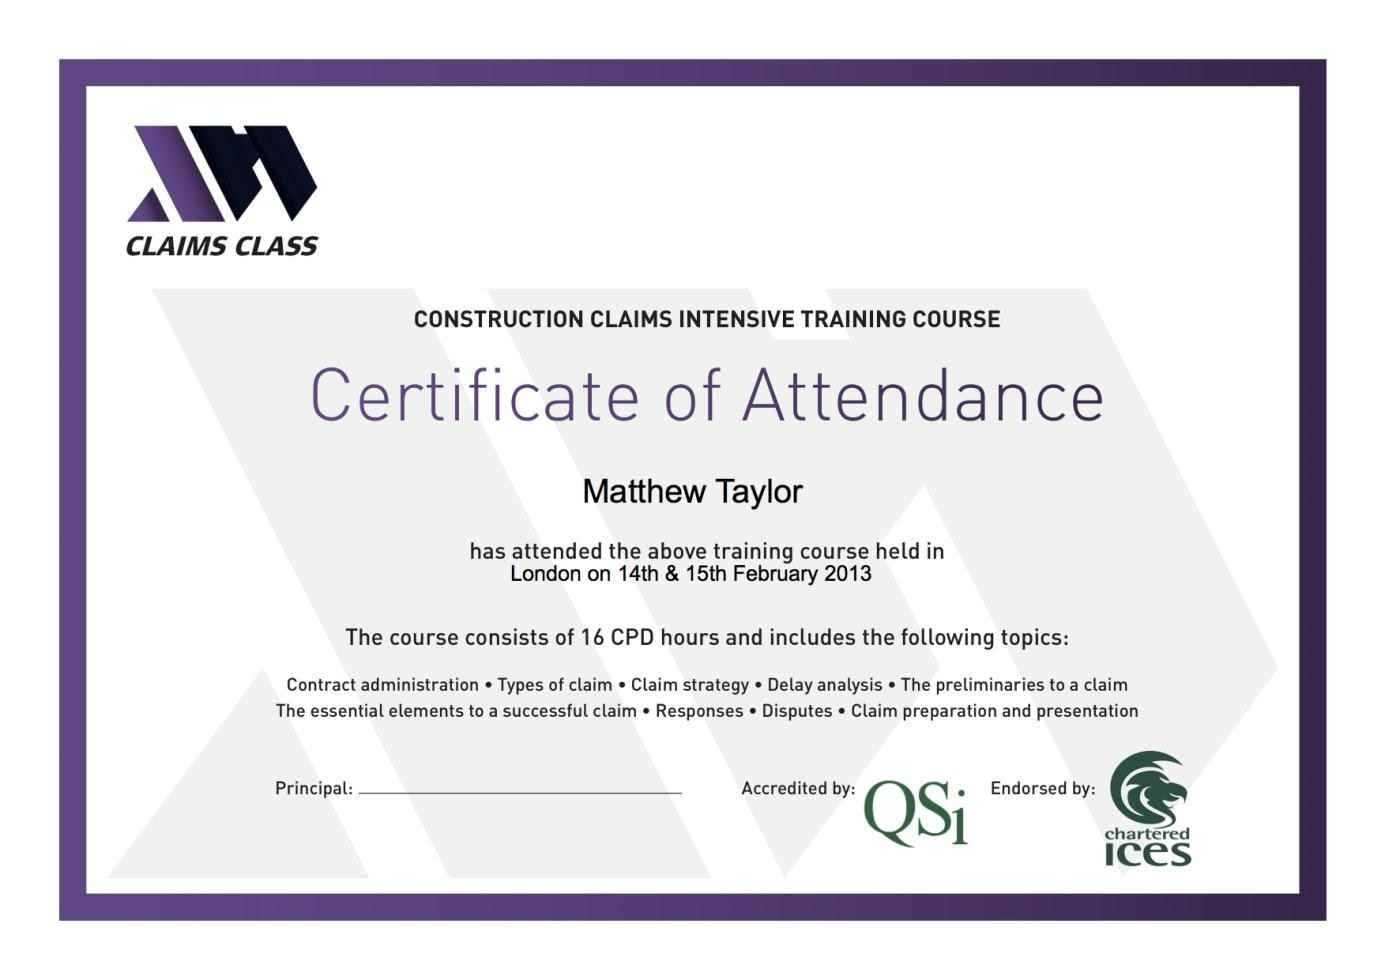 Certificates: Popular Attendance Certificate Template Word with regard to Certificate Of Attendance Conference Template